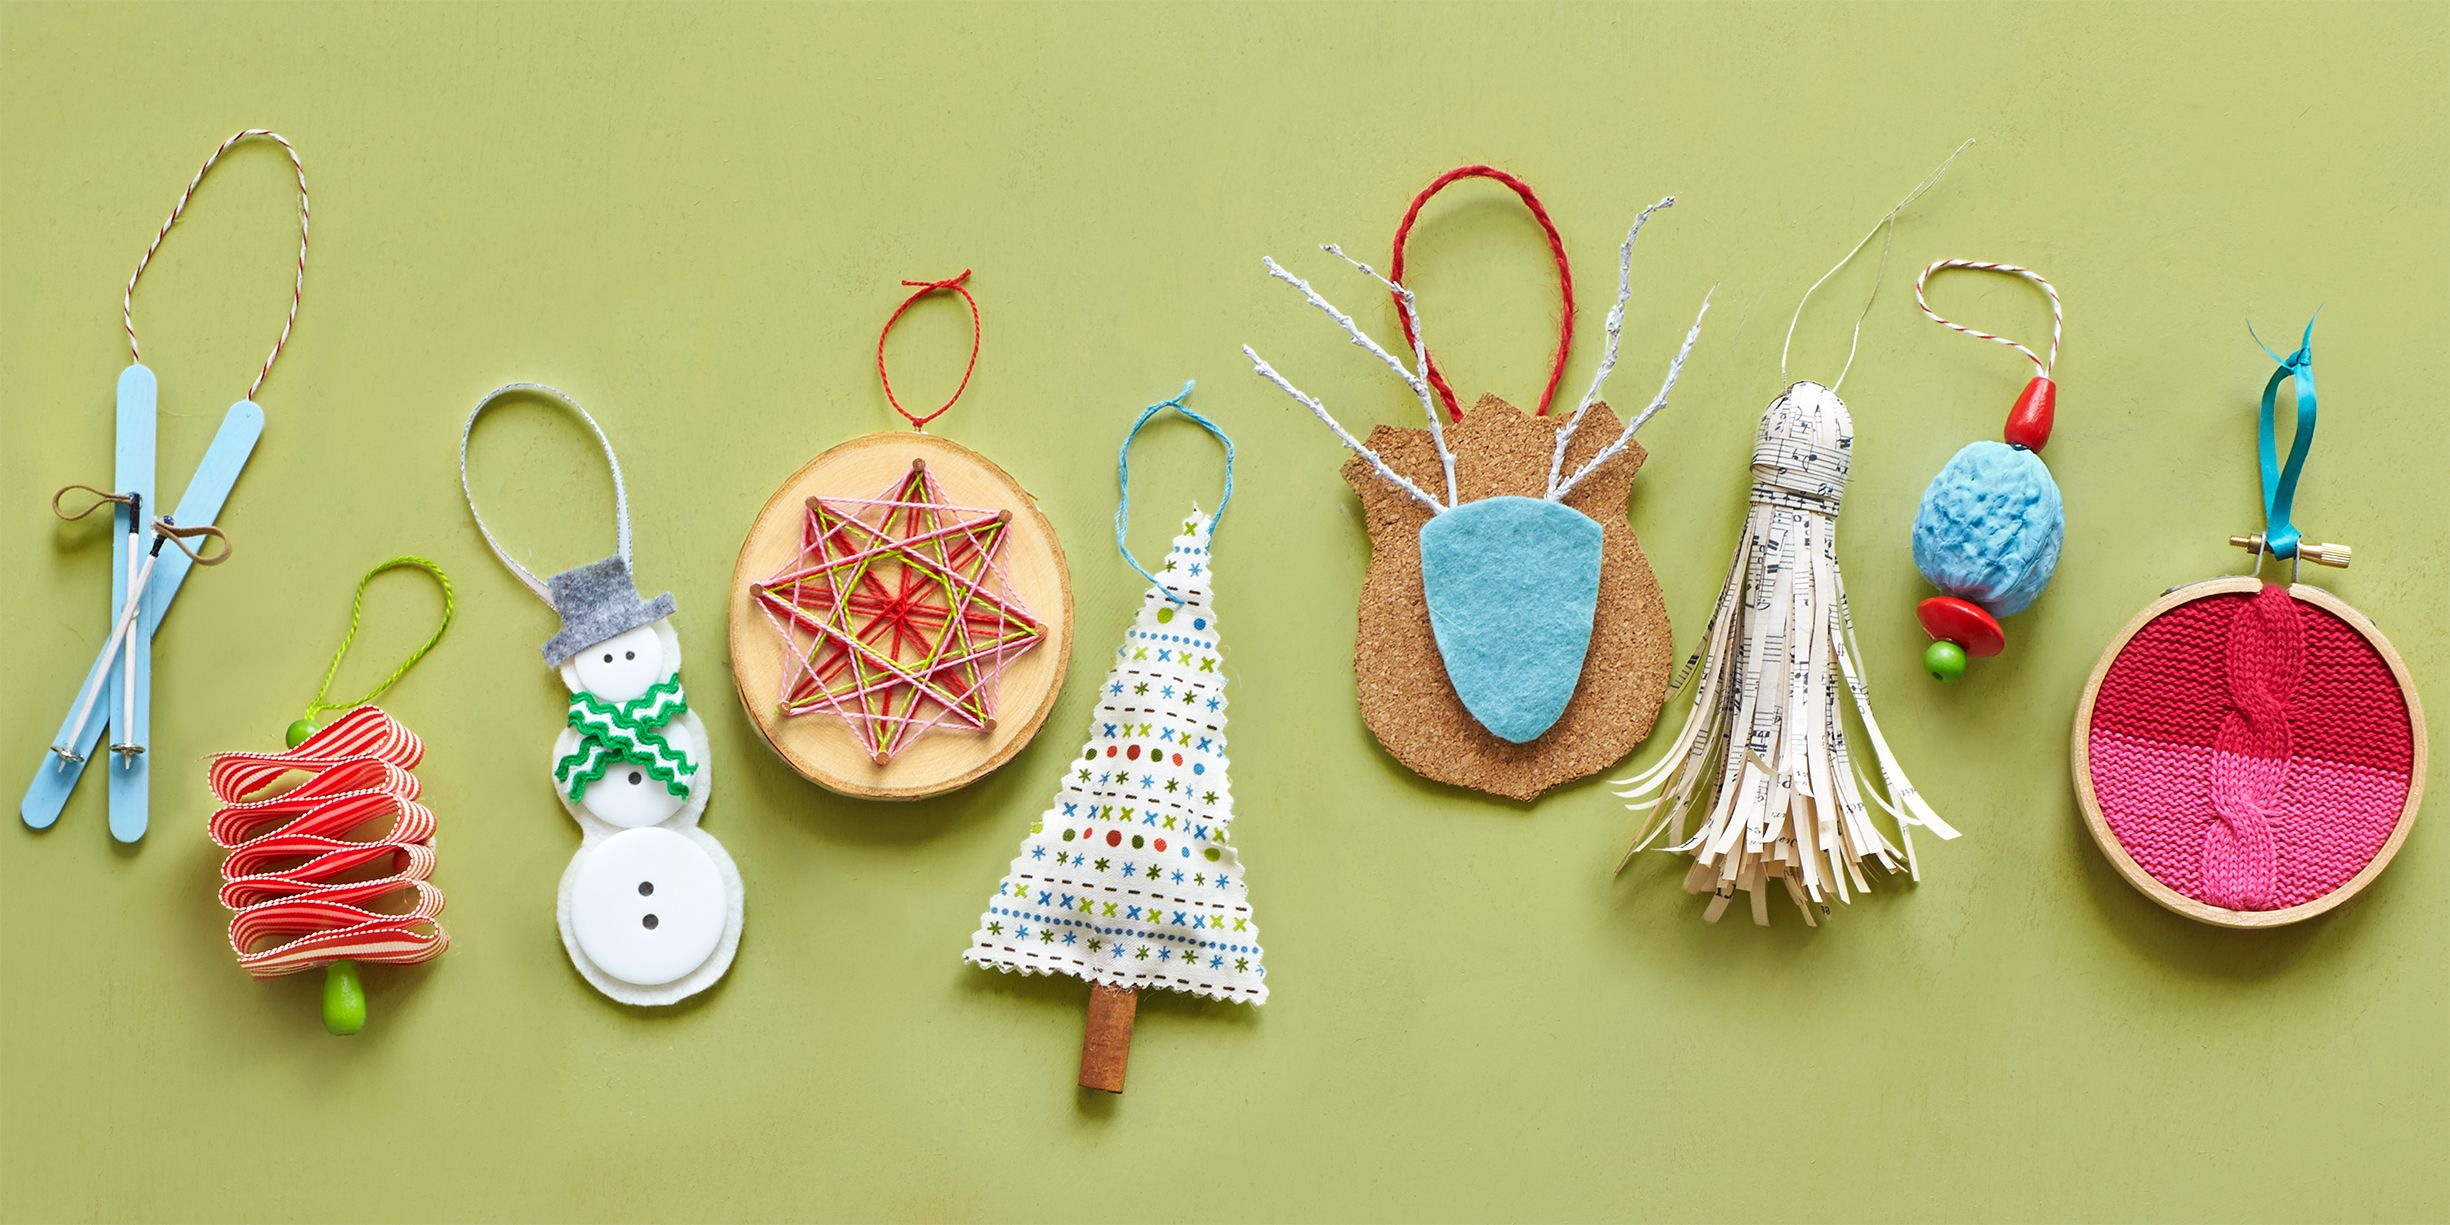 50 Homemade Christmas Ornaments - DIY Crafts with Christmas Tree ...